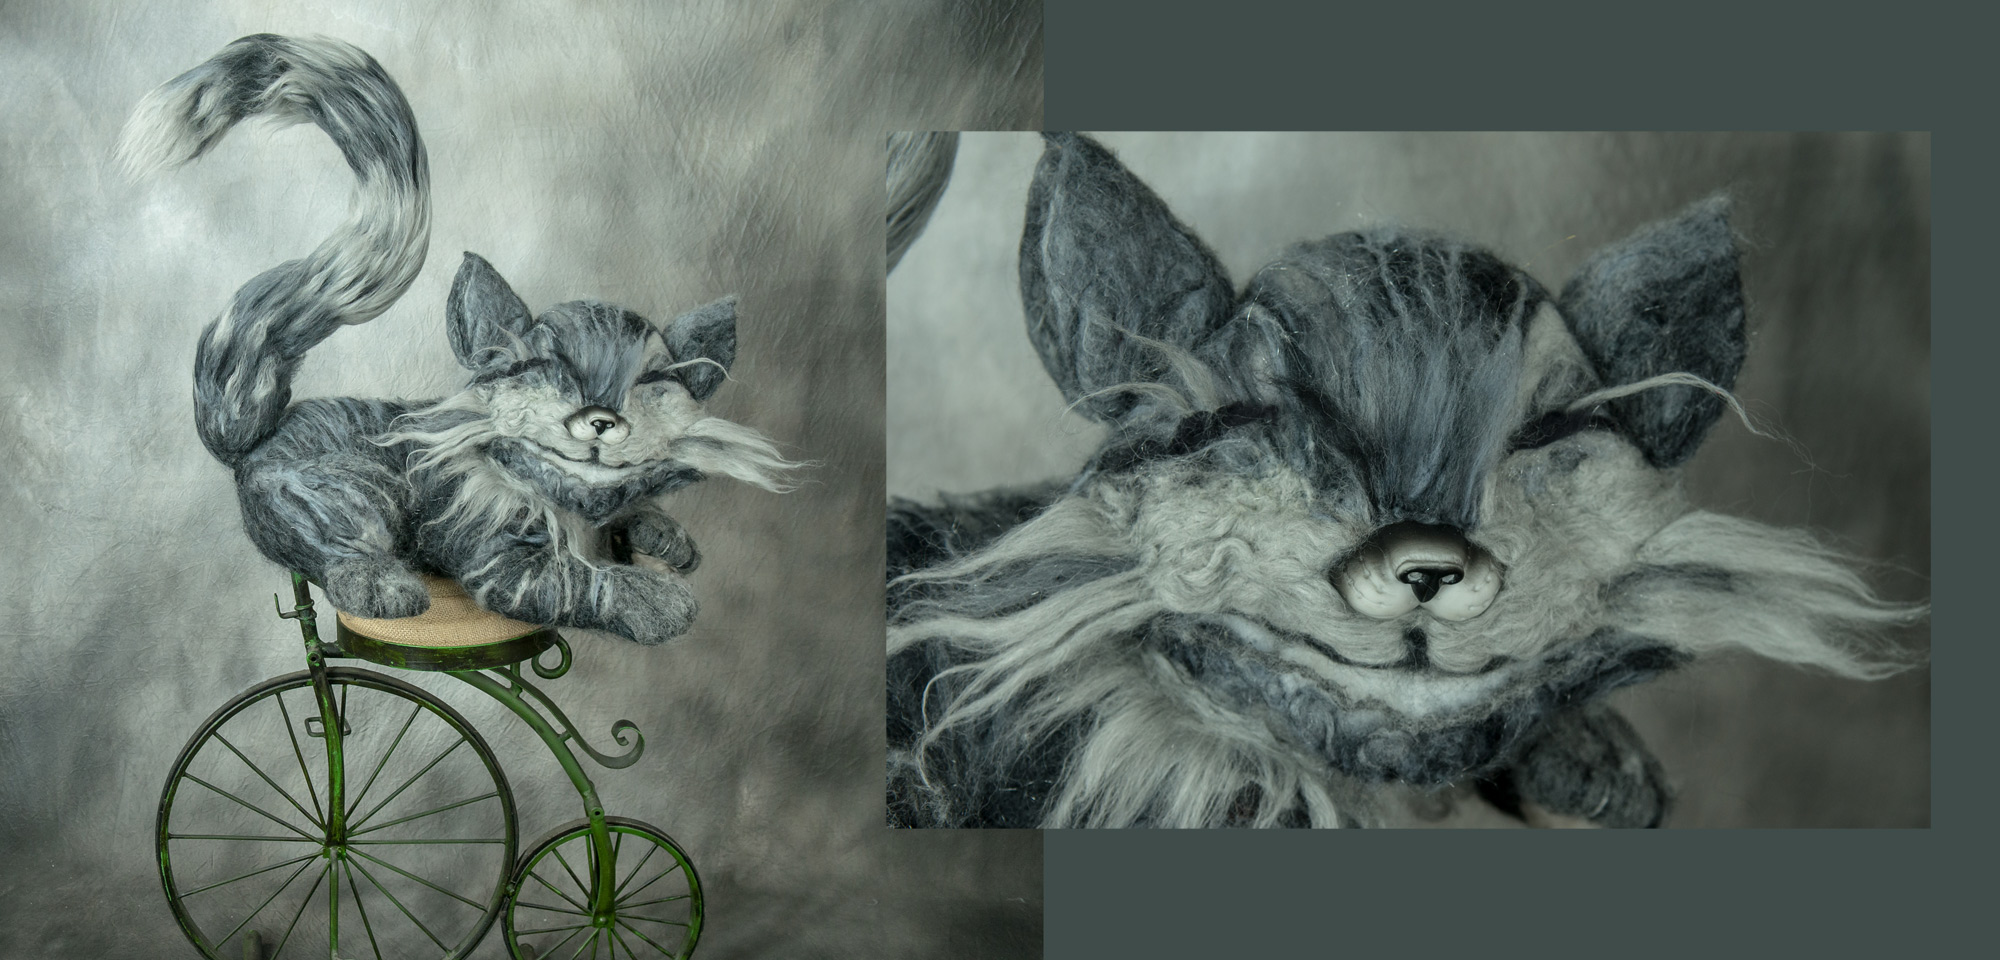 Here is a close up of the cat. I love how it turned out. Especially considering that it's my first large scale needle felted project ever :)